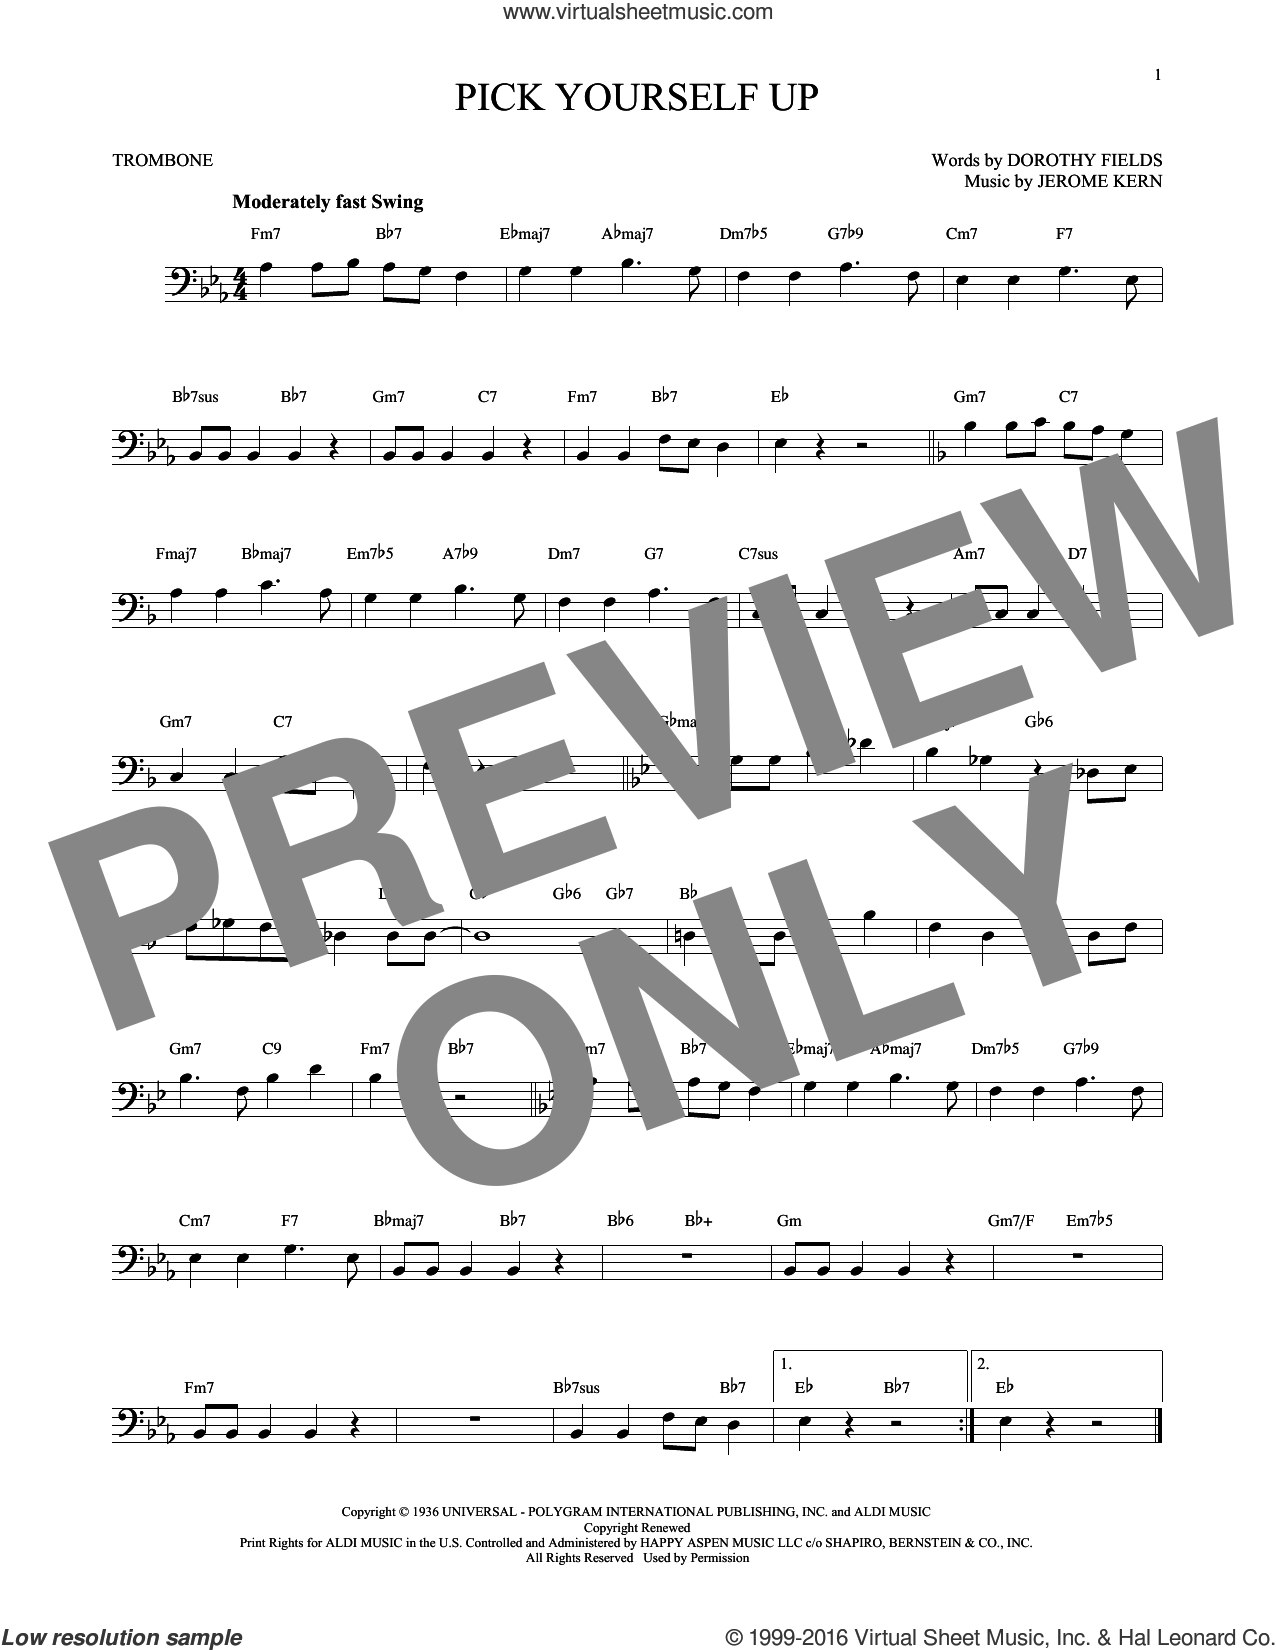 Pick Yourself Up sheet music for trombone solo by Dorothy Fields and Jerome Kern. Score Image Preview.